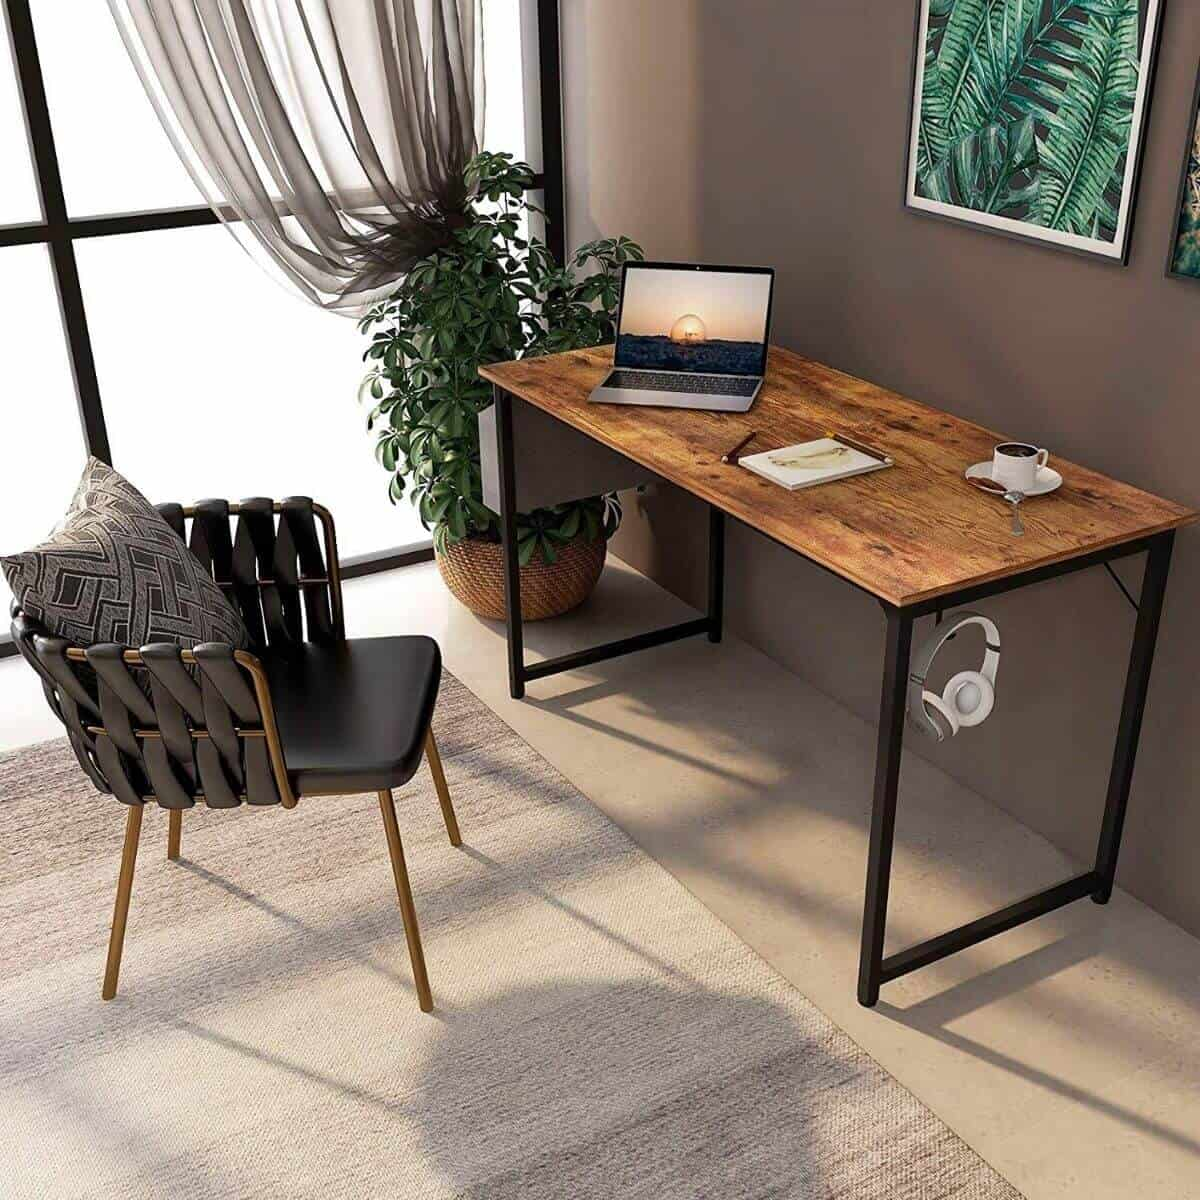 Room with a wooden desk, chair, rug, and plant.